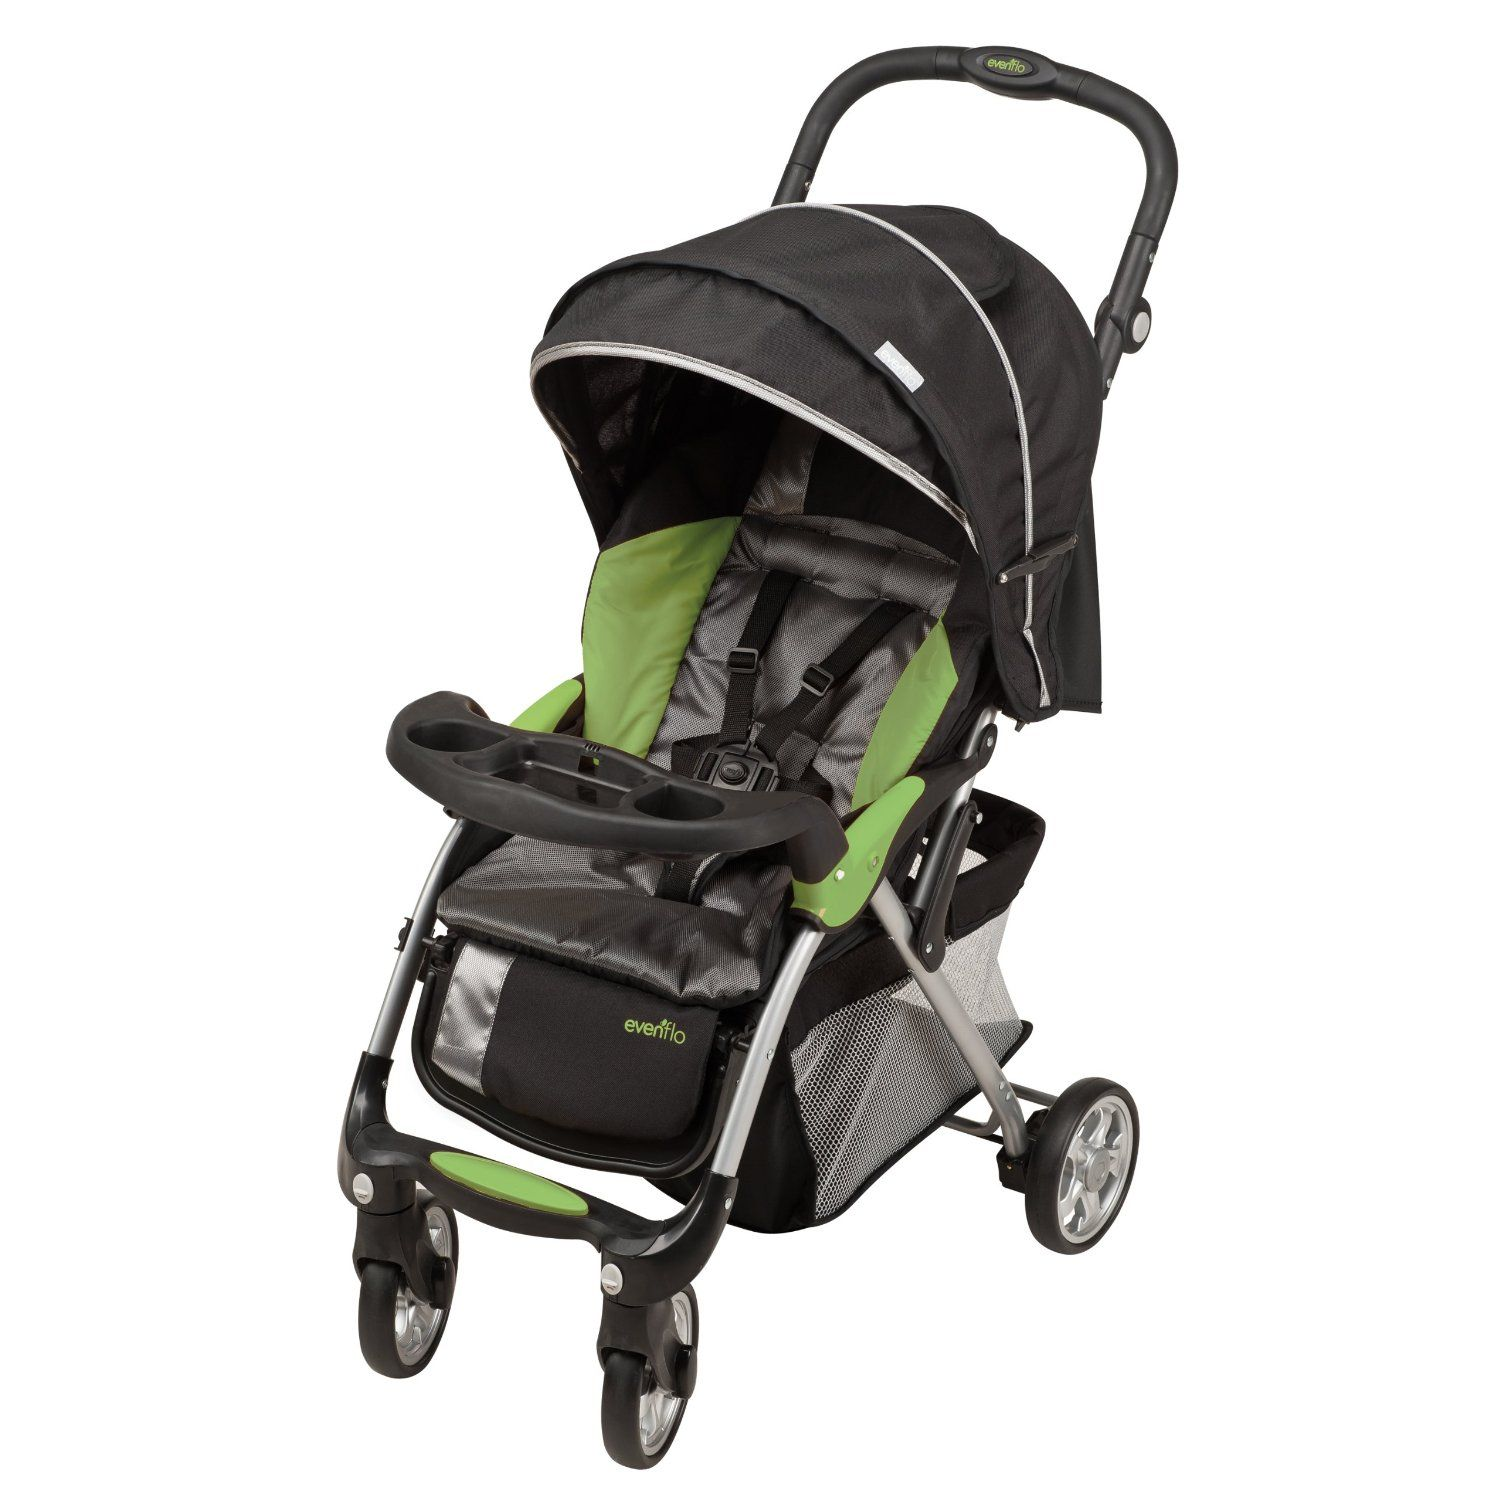 Evenflo Sibby Travel System w/ Litemax ICS (Charcoal